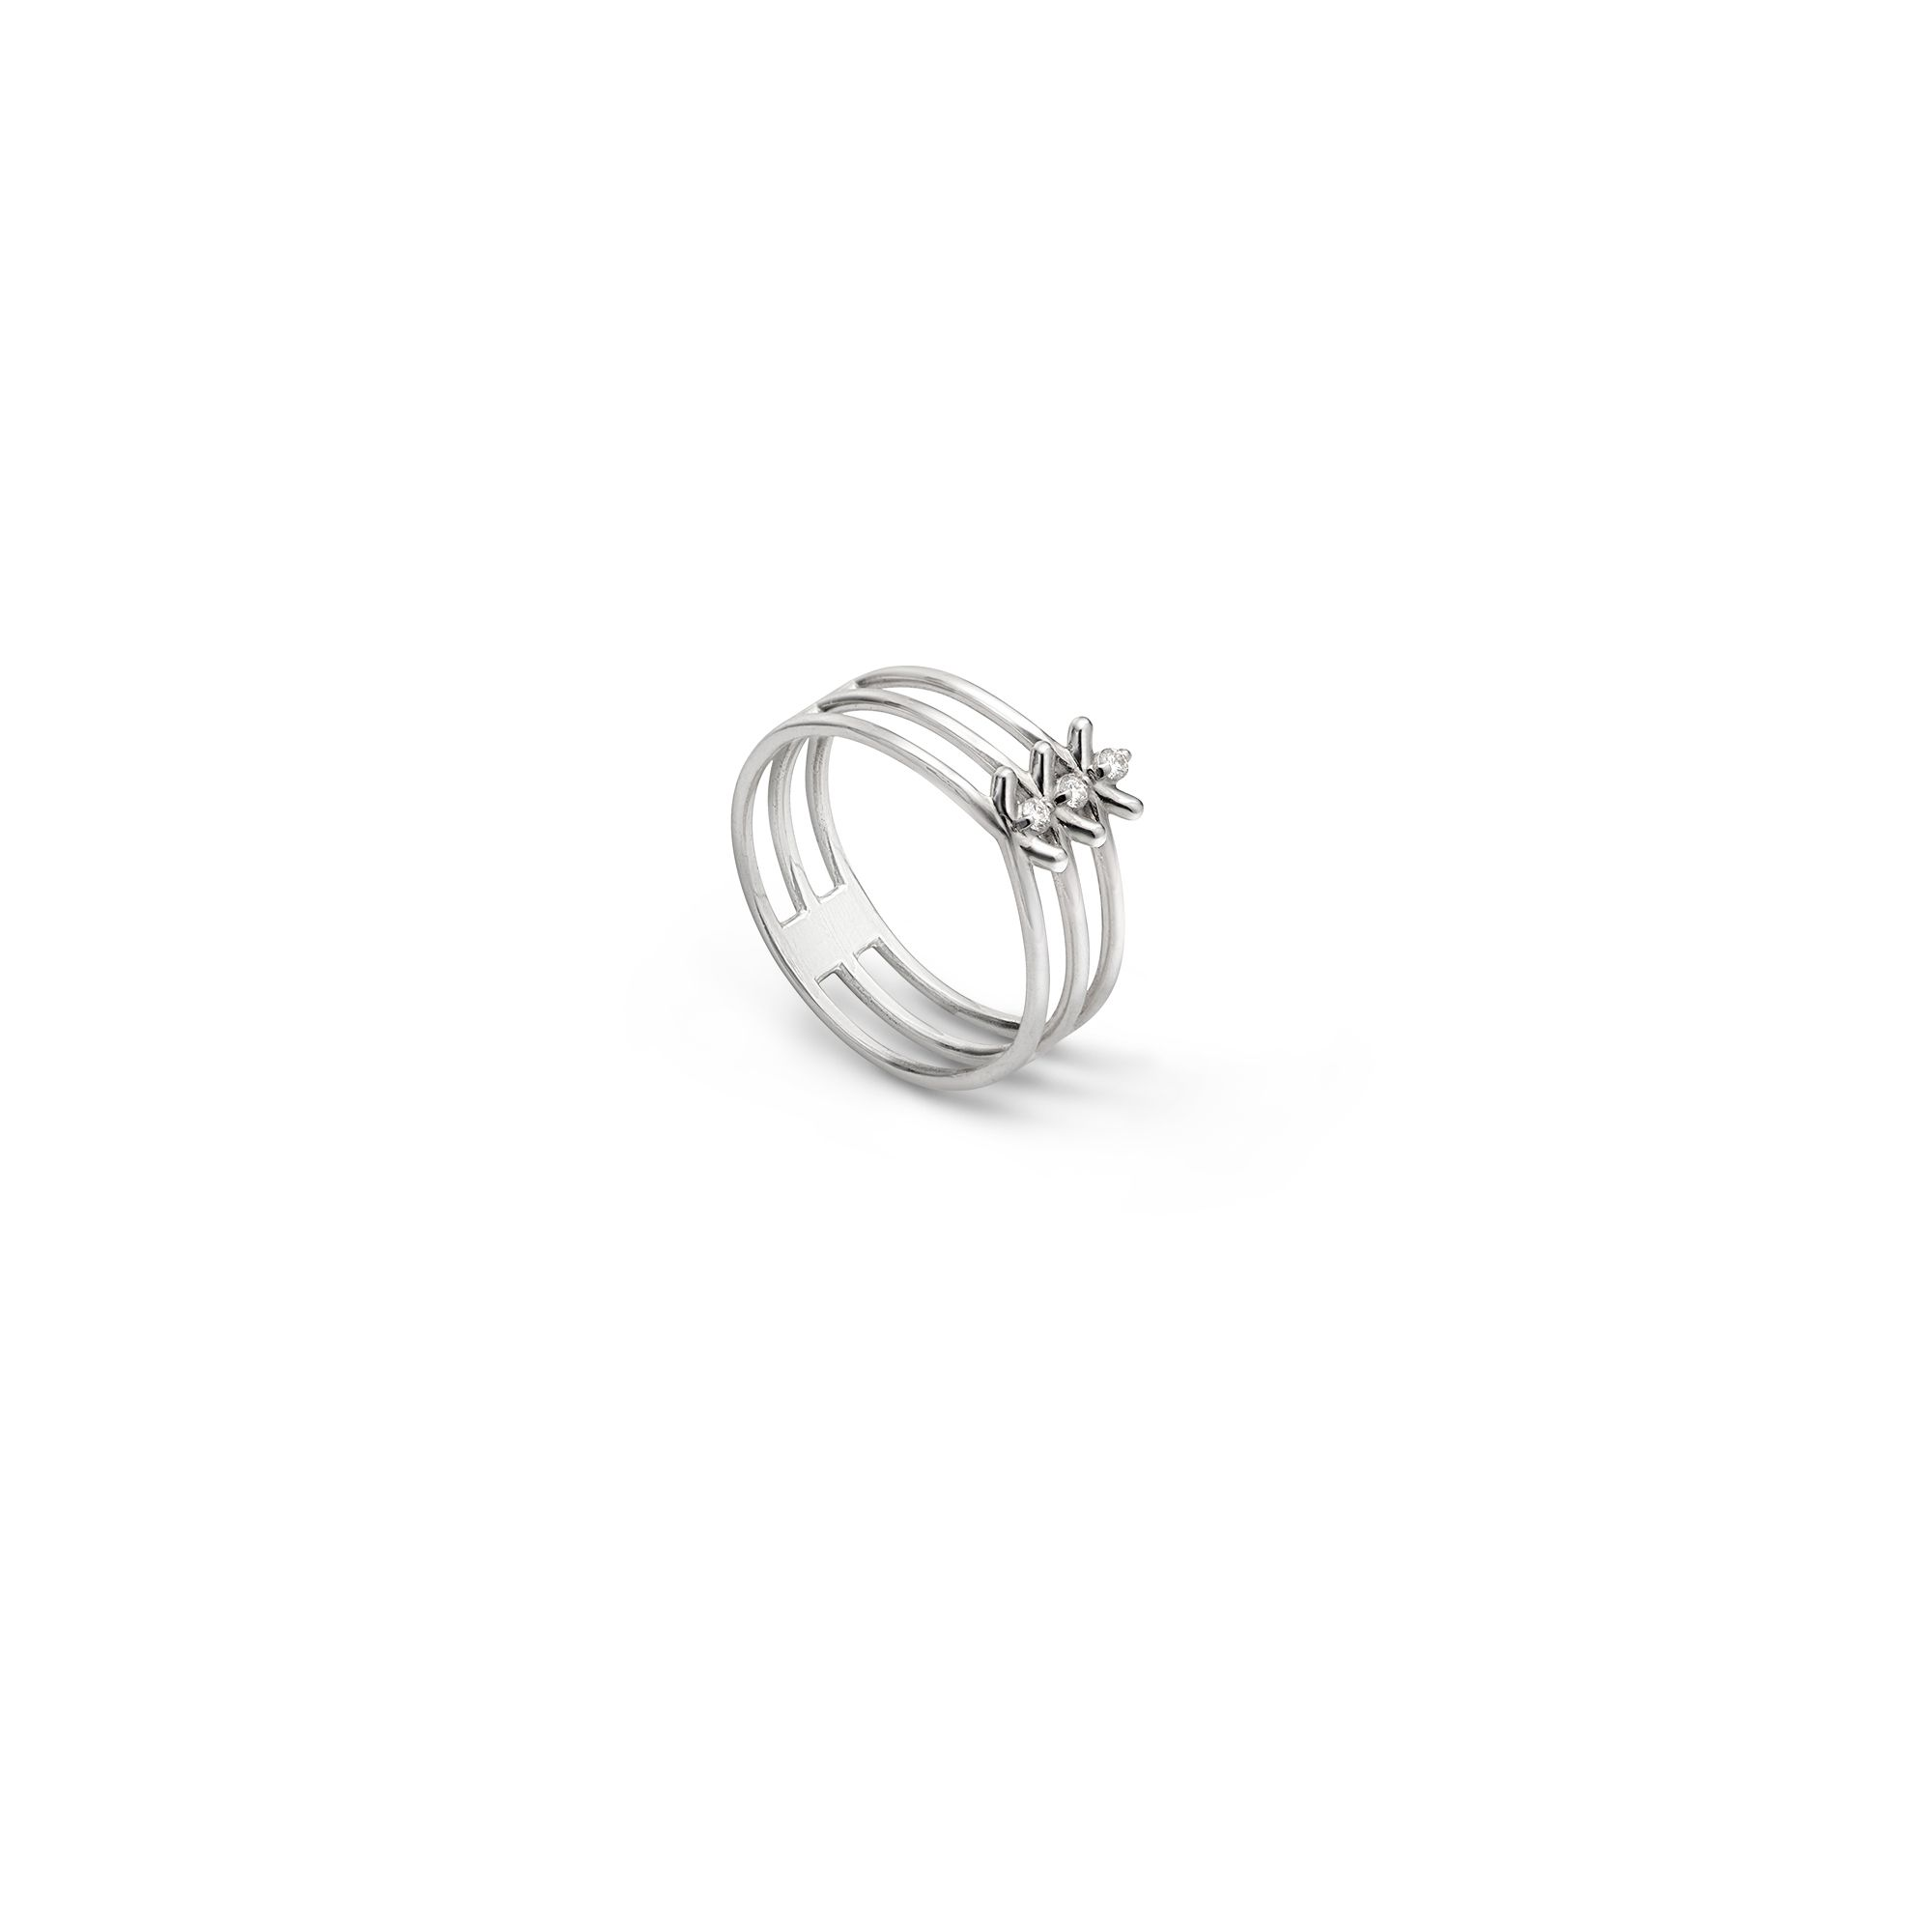 3 element 'Spinae' ring White gold ring with diamonds